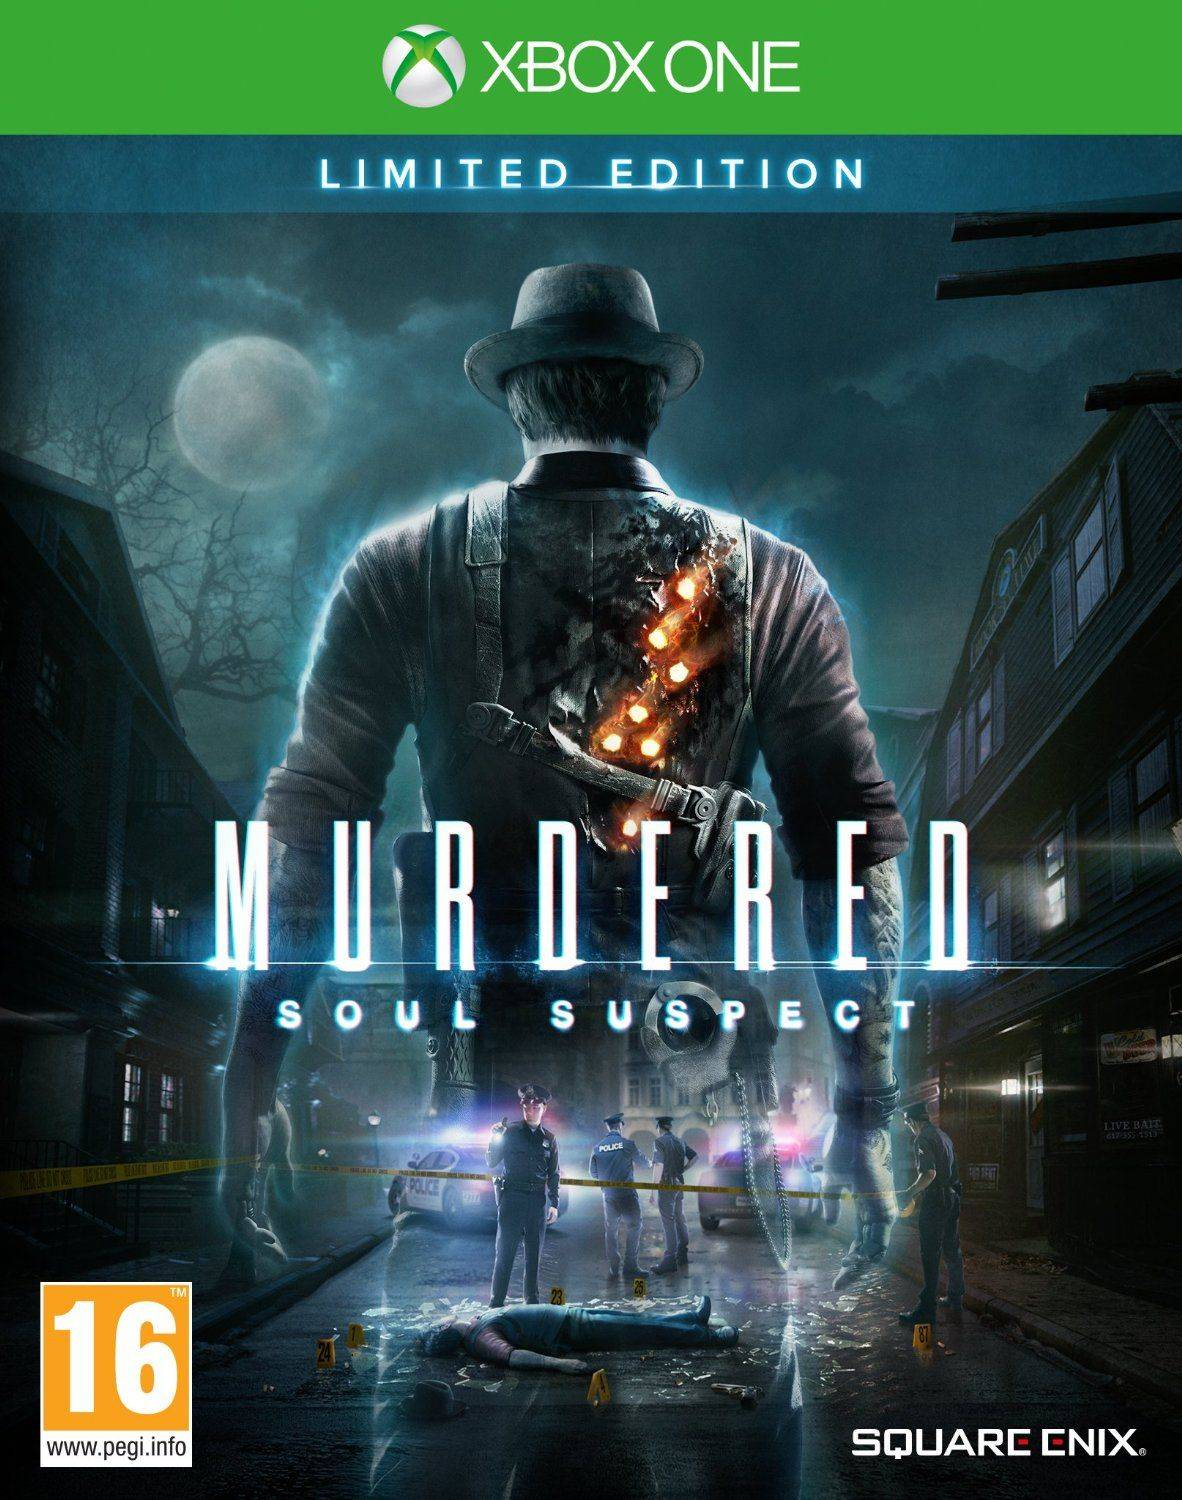 Square Enix Murdered: Soul Suspect Limited Edition Xbox One